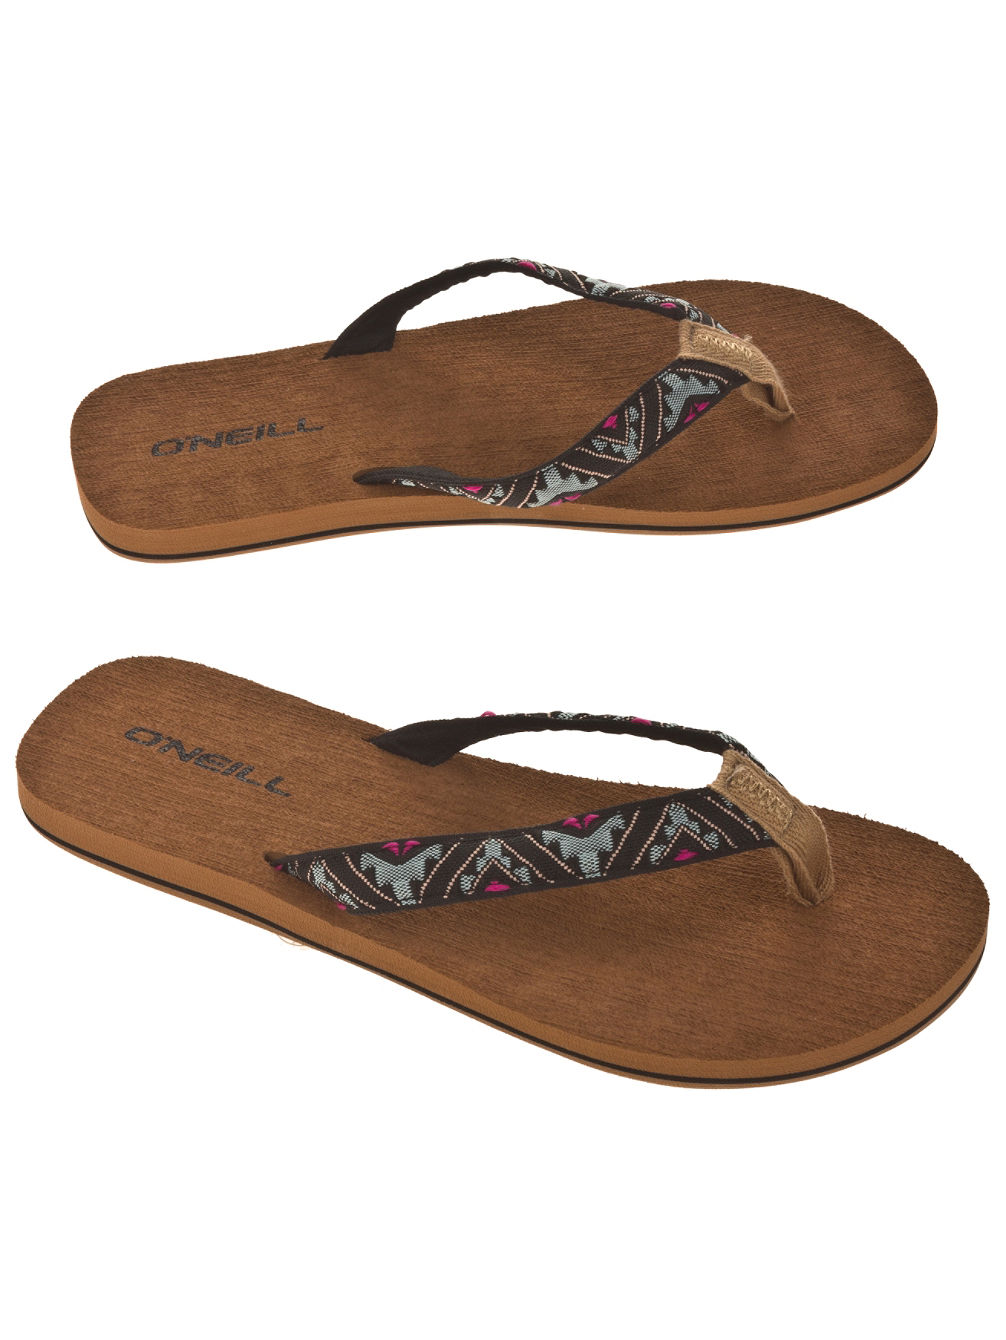 o-neill-evie-sandals-women